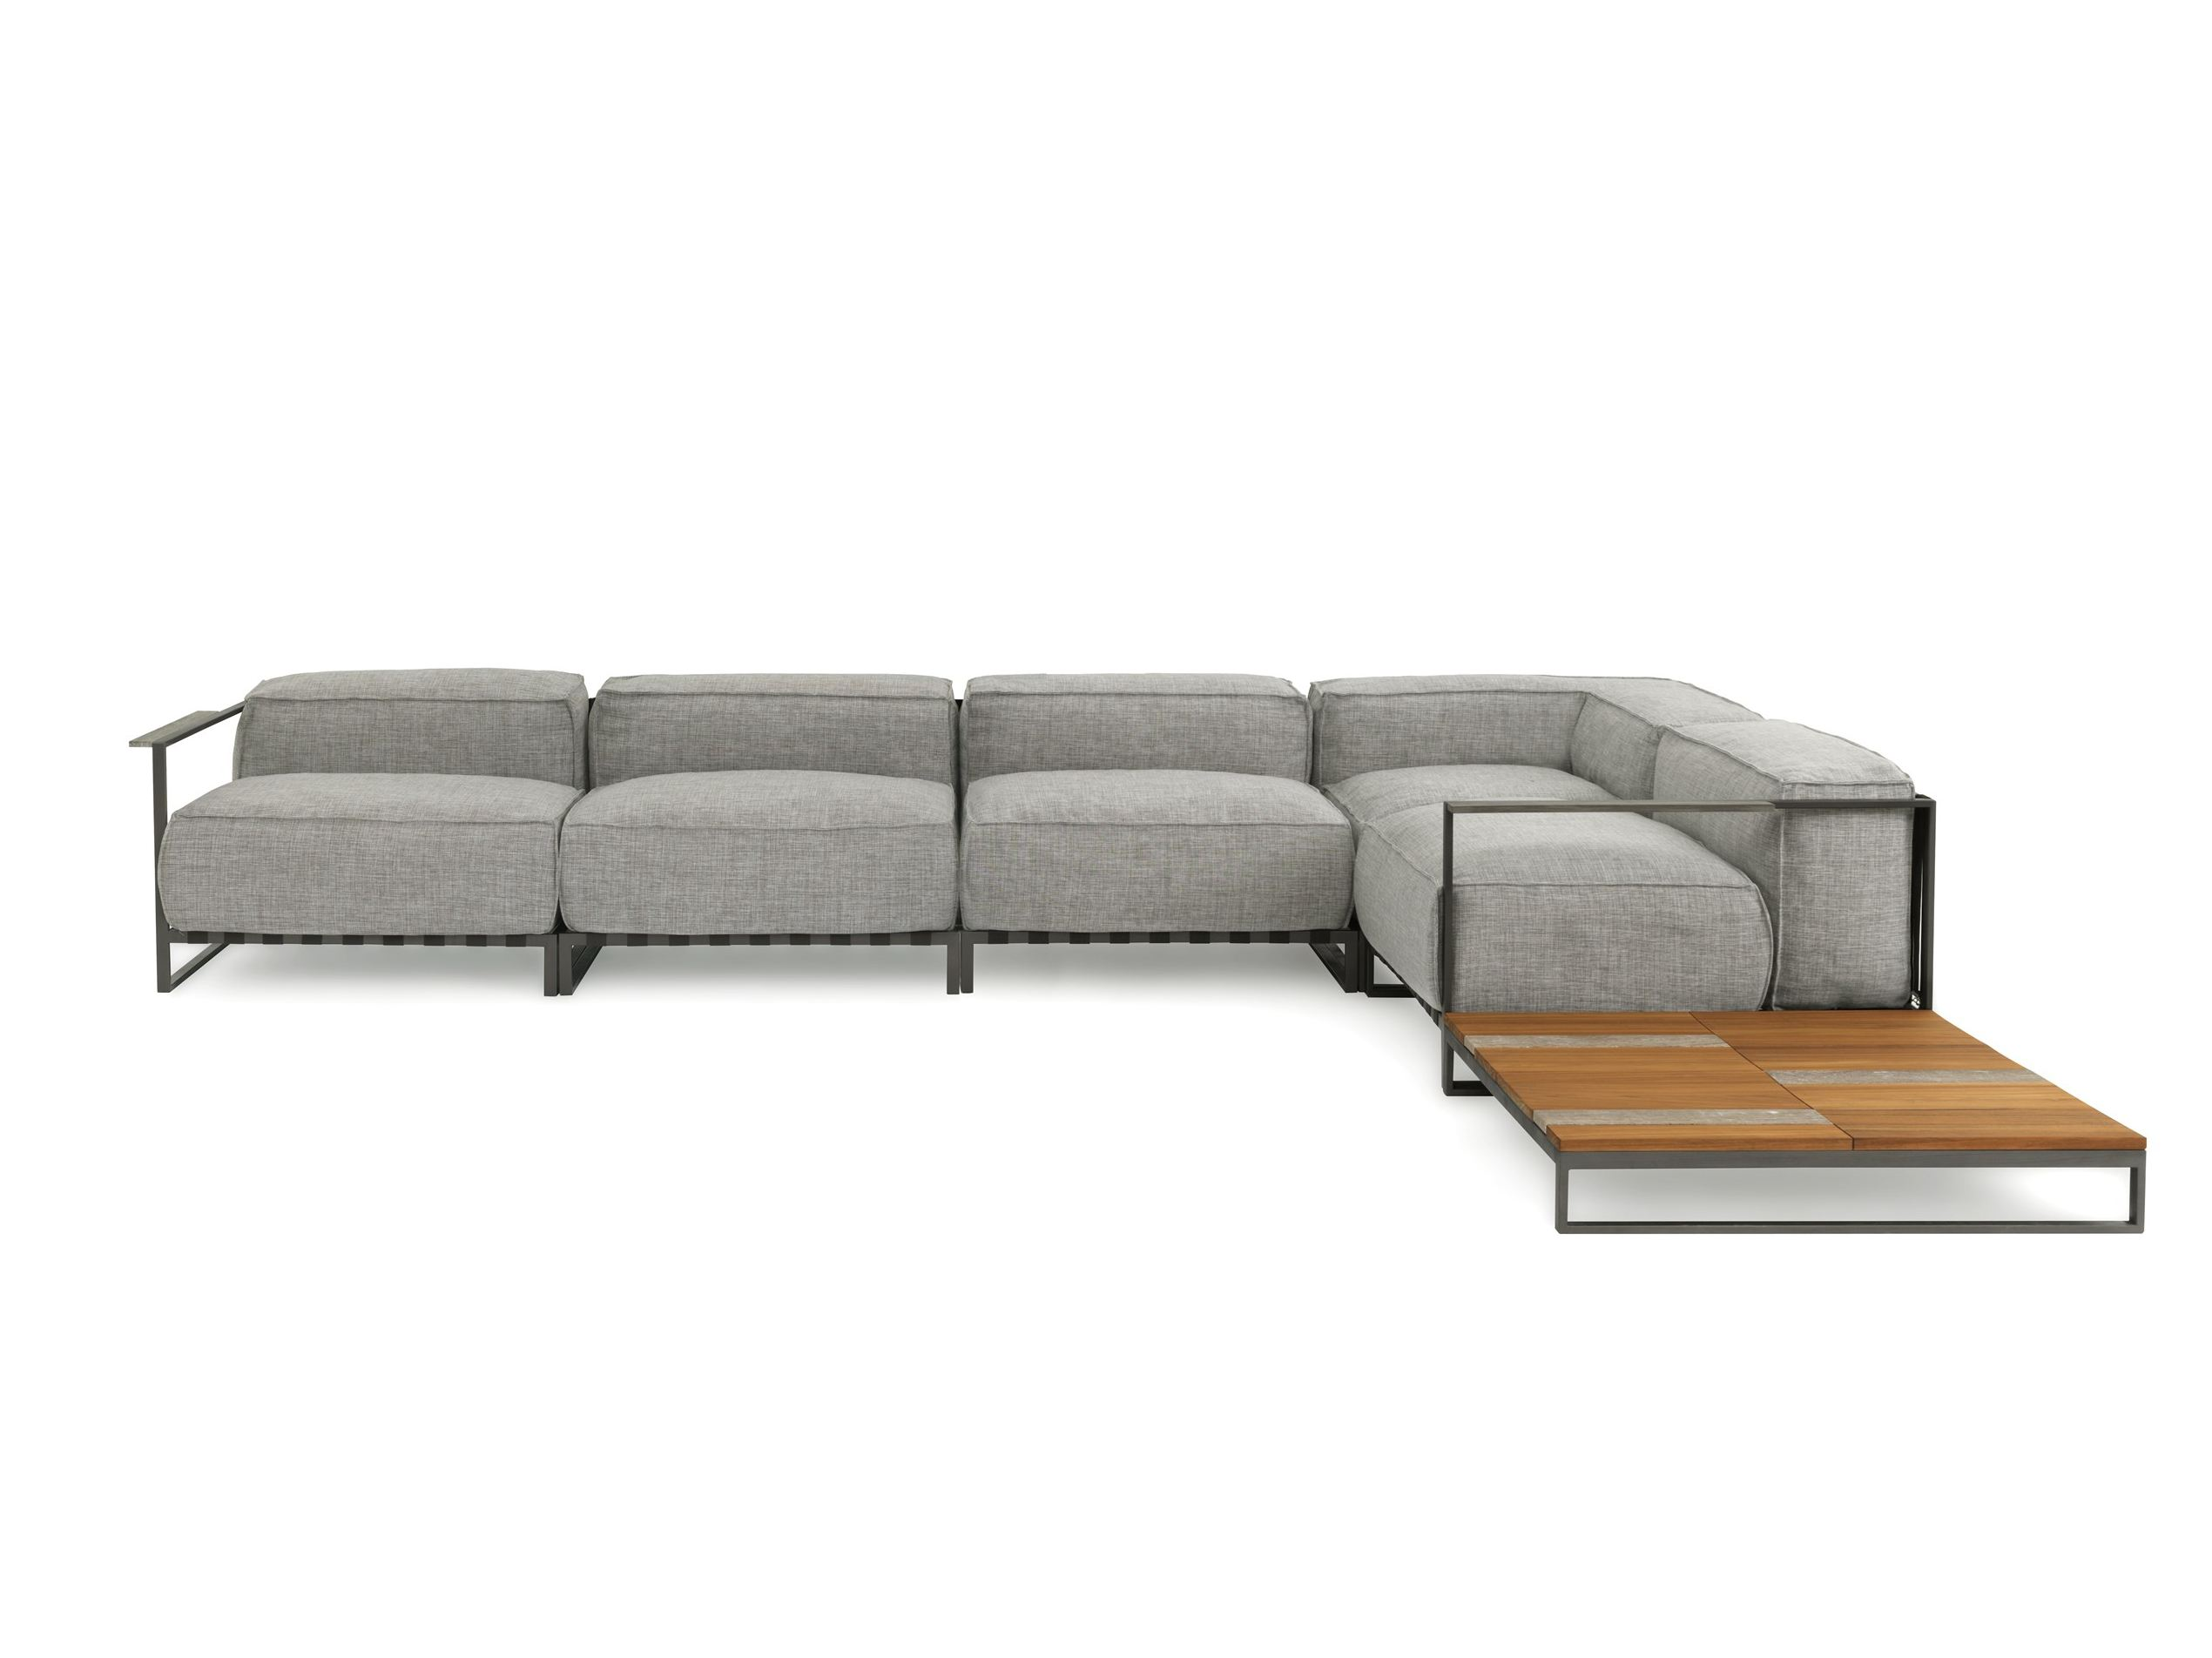 Corner sectional fabric sofa CASILDA